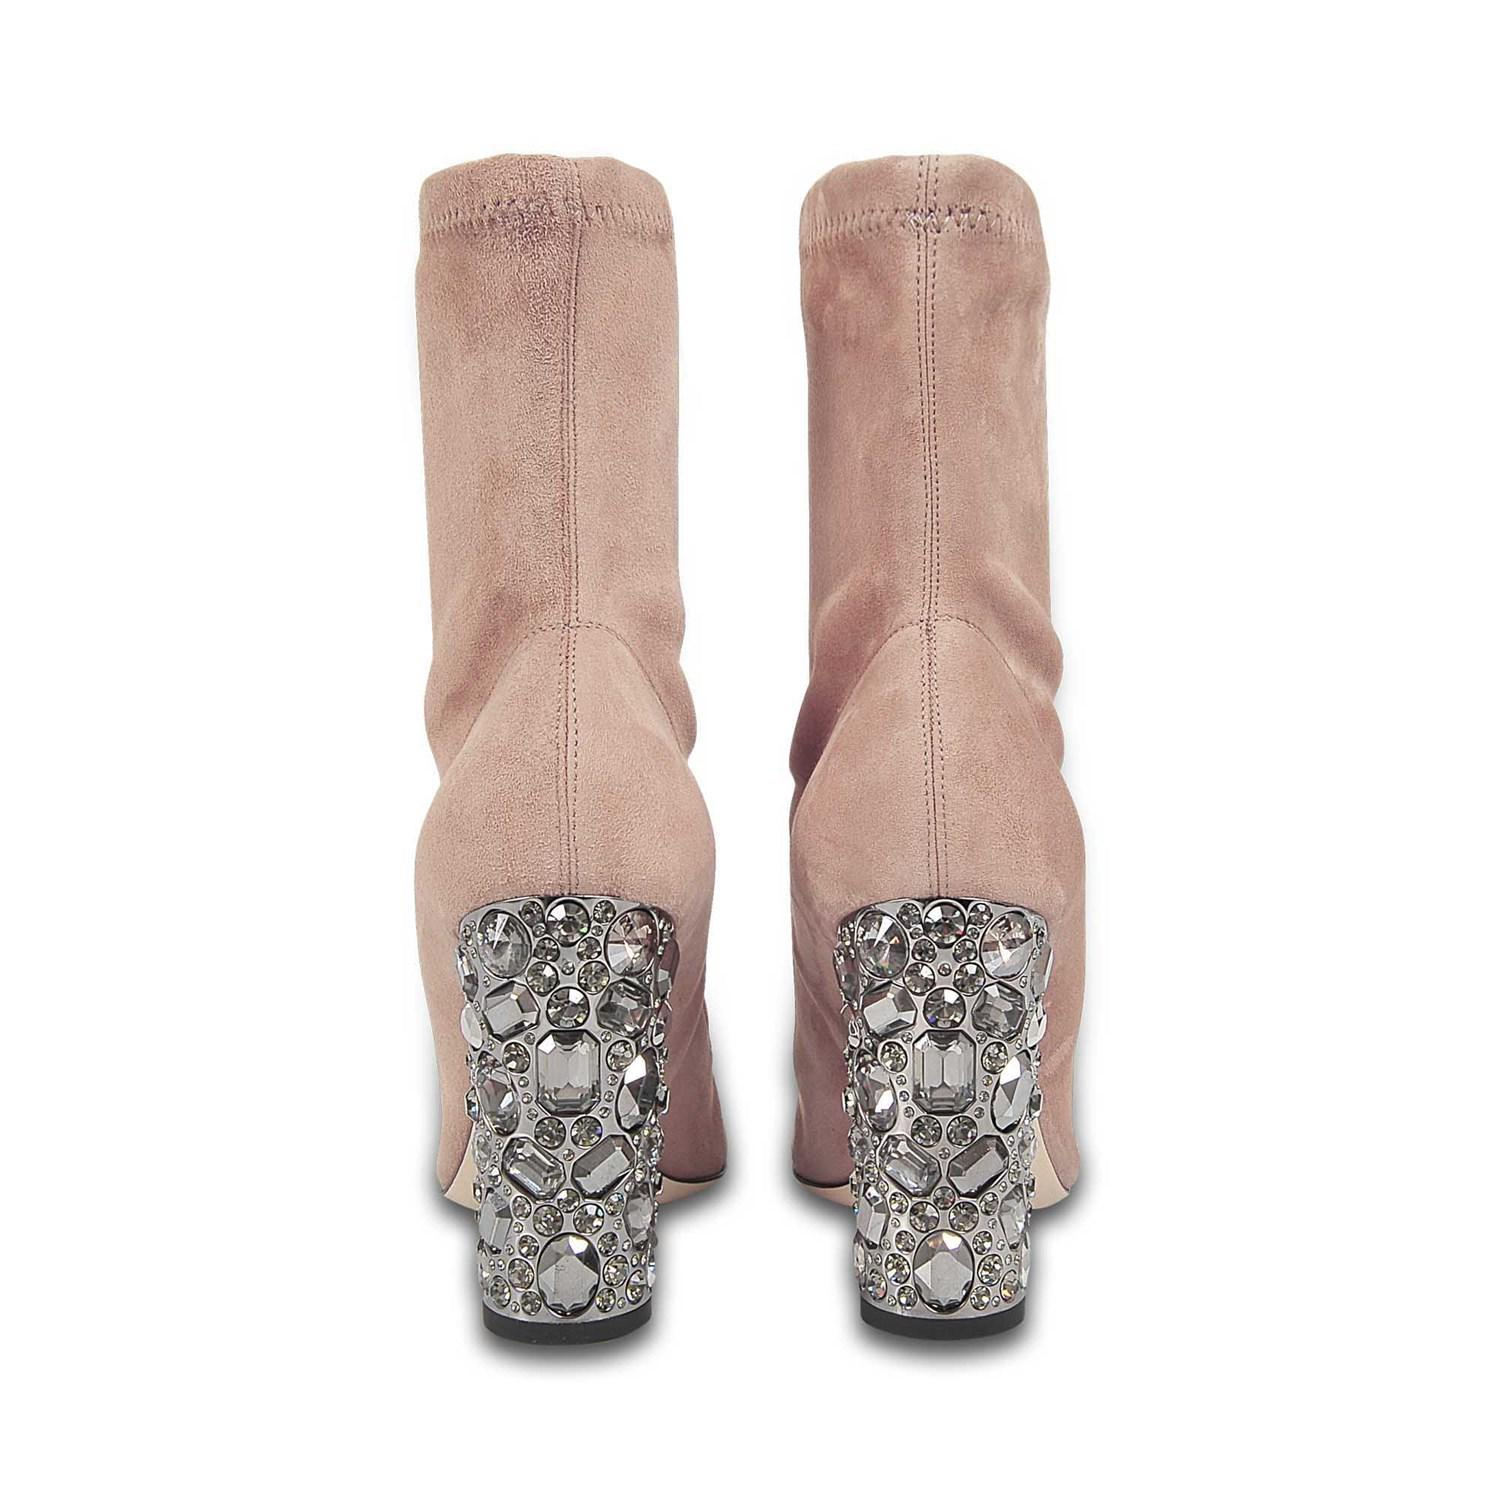 ba7a659f3ac Lyst - Jimmy Choo Maine Suede Booties With Crystal Heels In Ballet ...